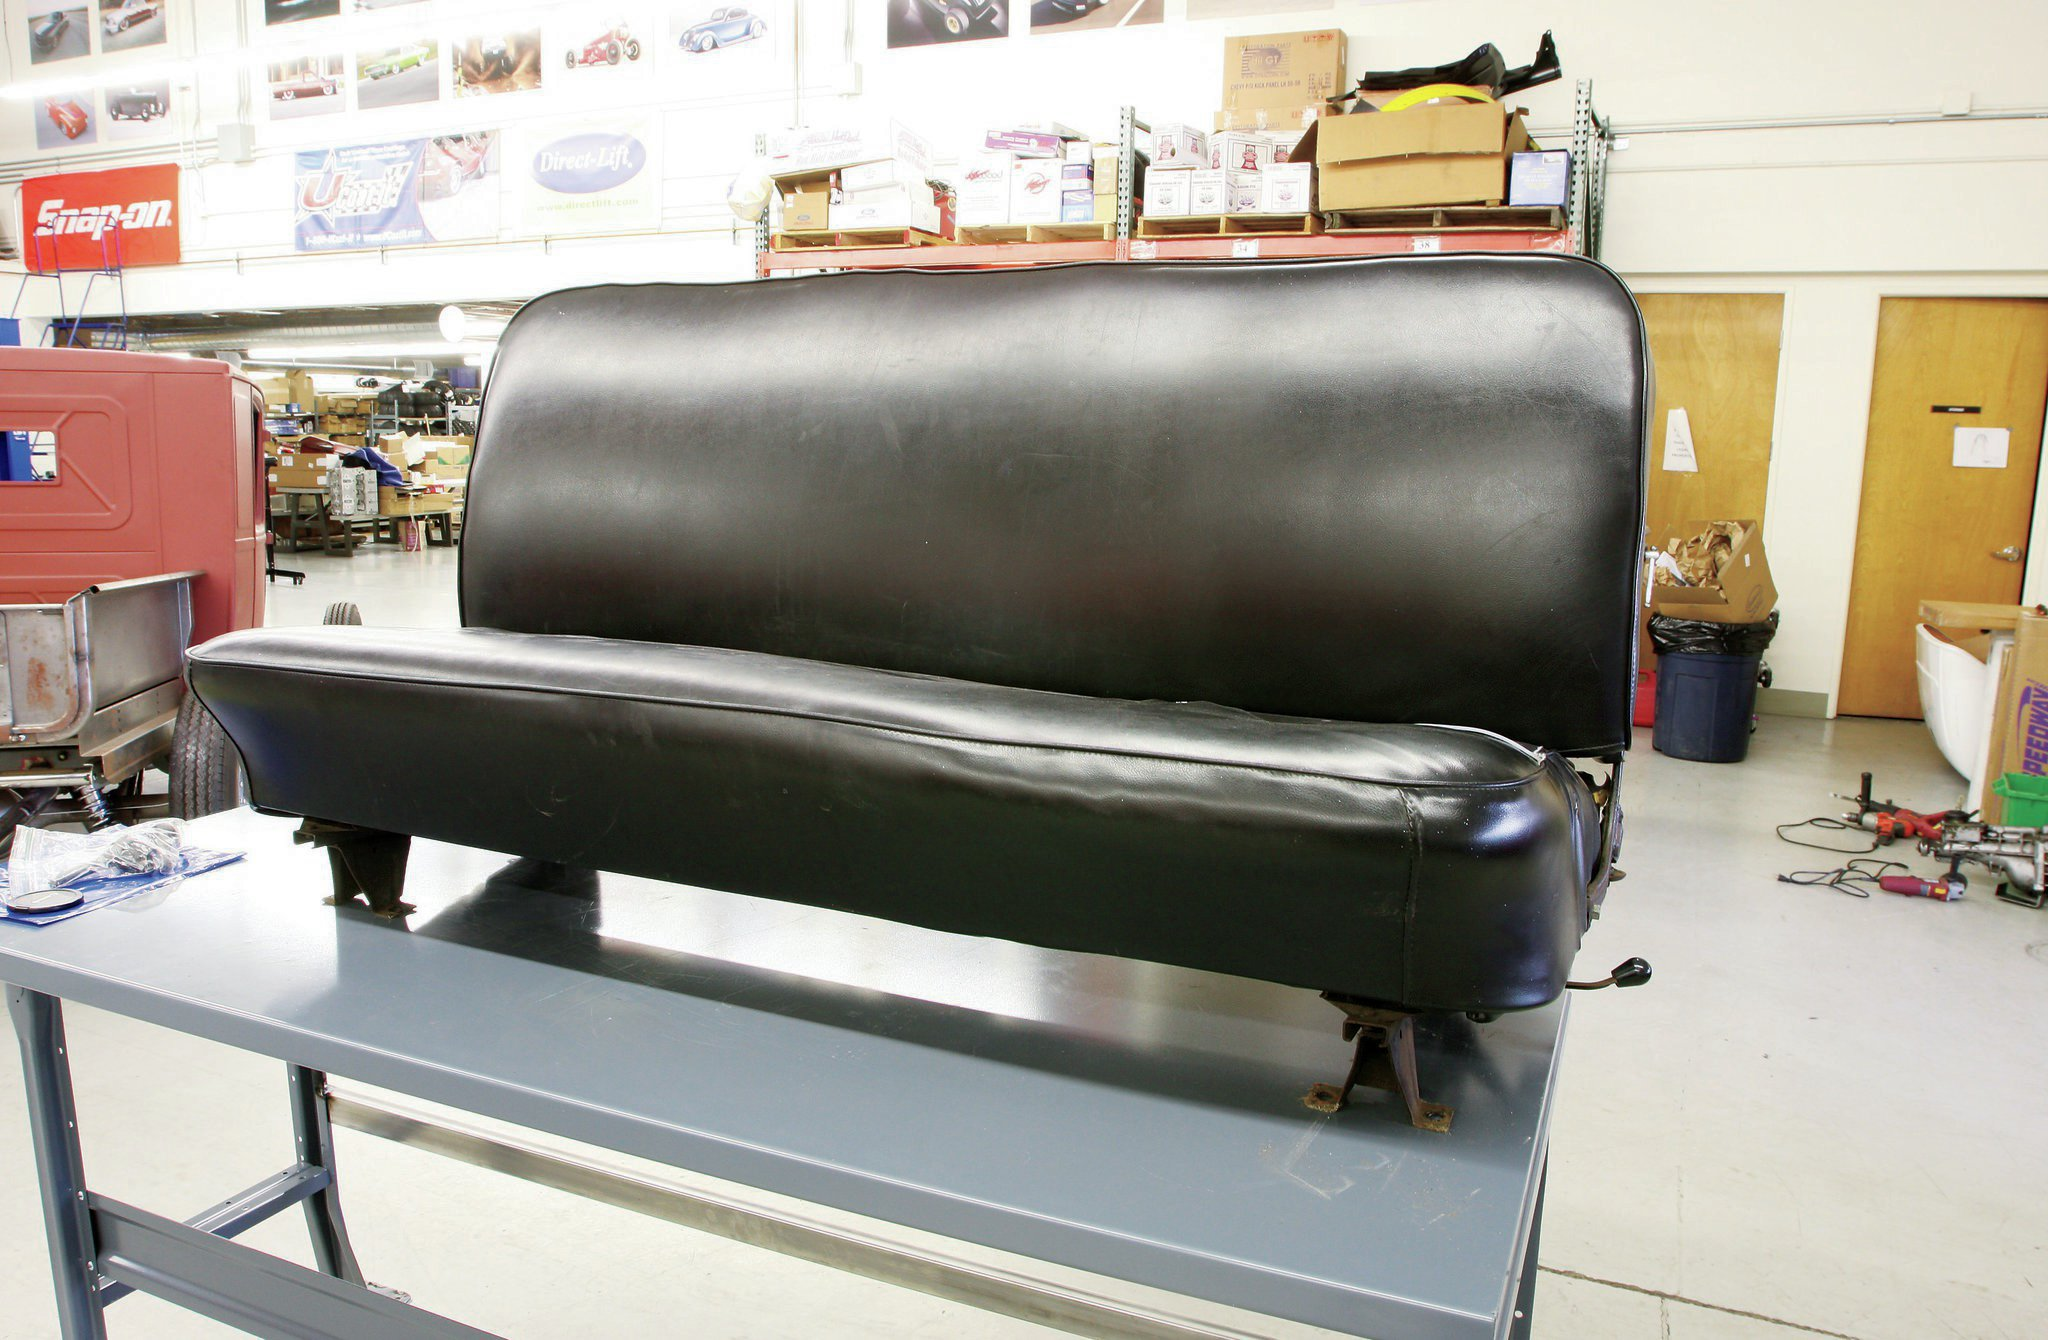 Superb Rebuilding A Stock Bench Seat Part 1 Hot Rod Network Uwap Interior Chair Design Uwaporg